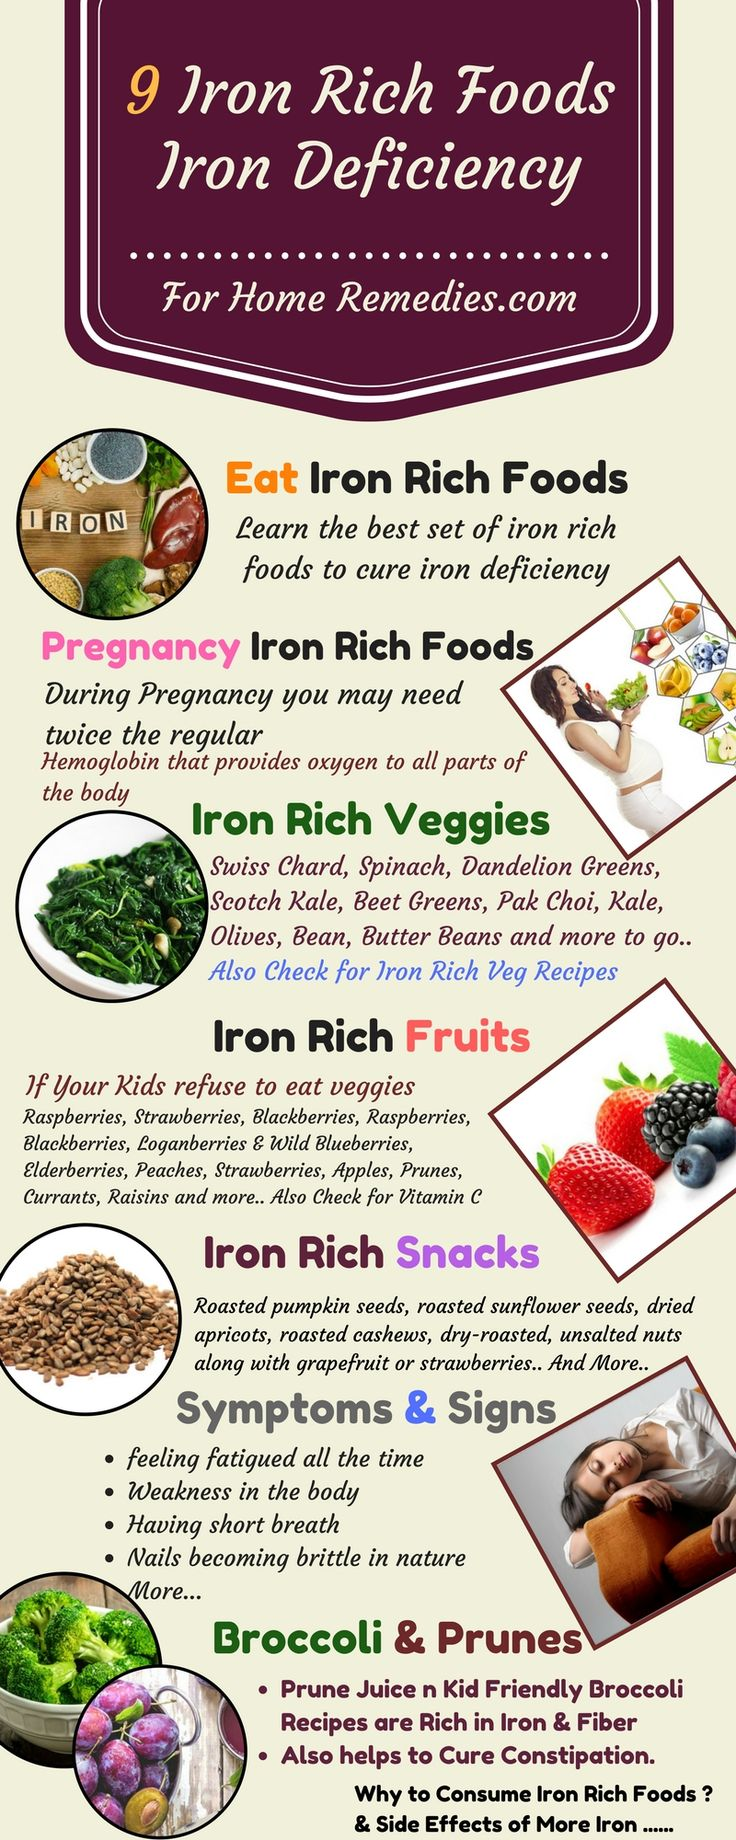 52 best anemia help images on pinterest high iron foods iron rich home remedies iron deficiency causes and symptoms iron rich foods for pregnancy babies workwithnaturefo